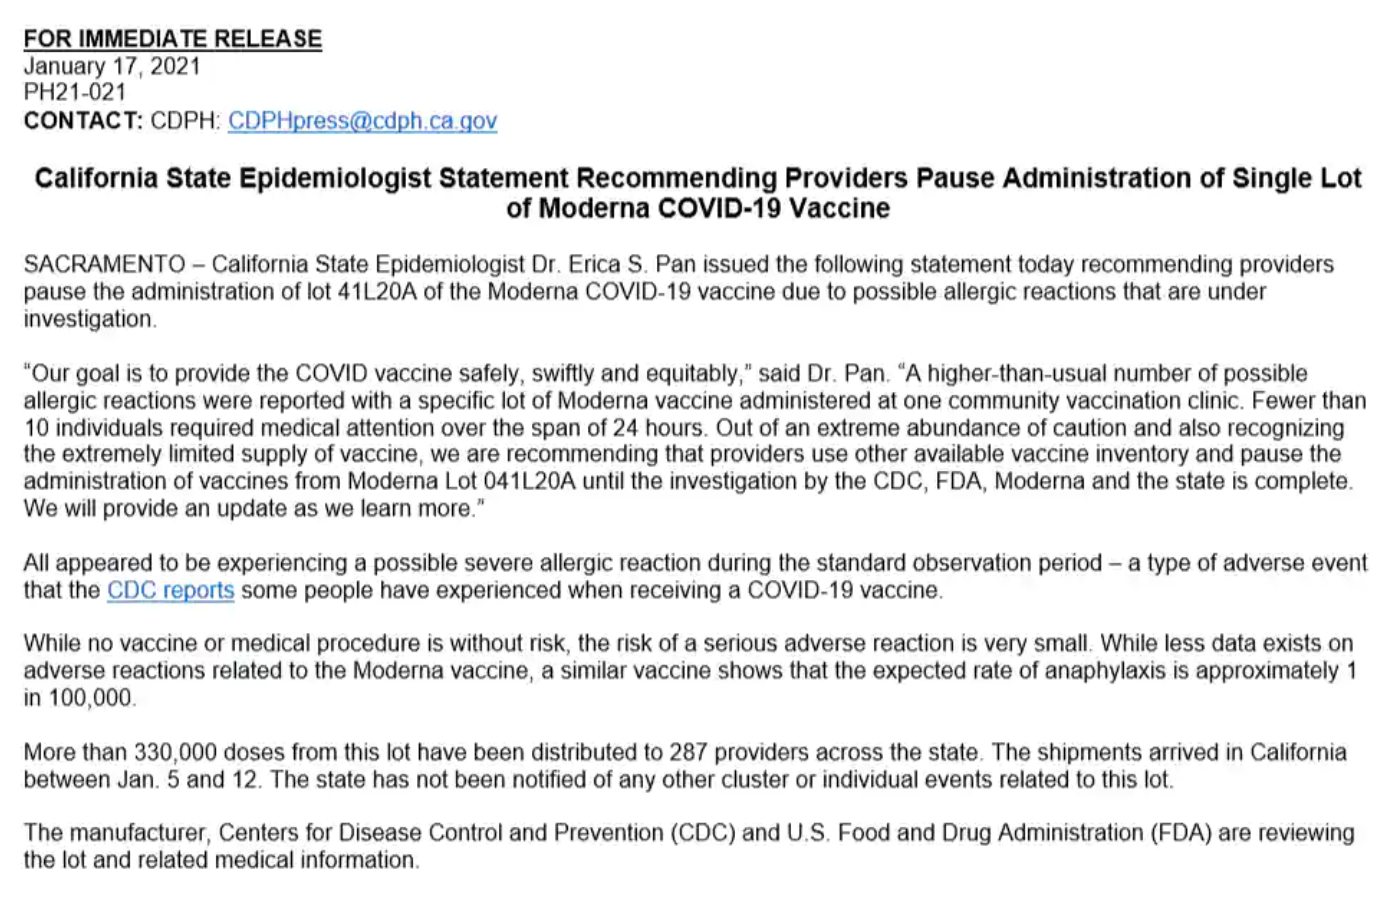 California State's top epidemiologist Dr. Erica S. Pan issued a statement recommending providers pause the administration of lot '041L20A' of the Moderna COVID-19 vaccine due to possible allergic reactions that are under investigation.